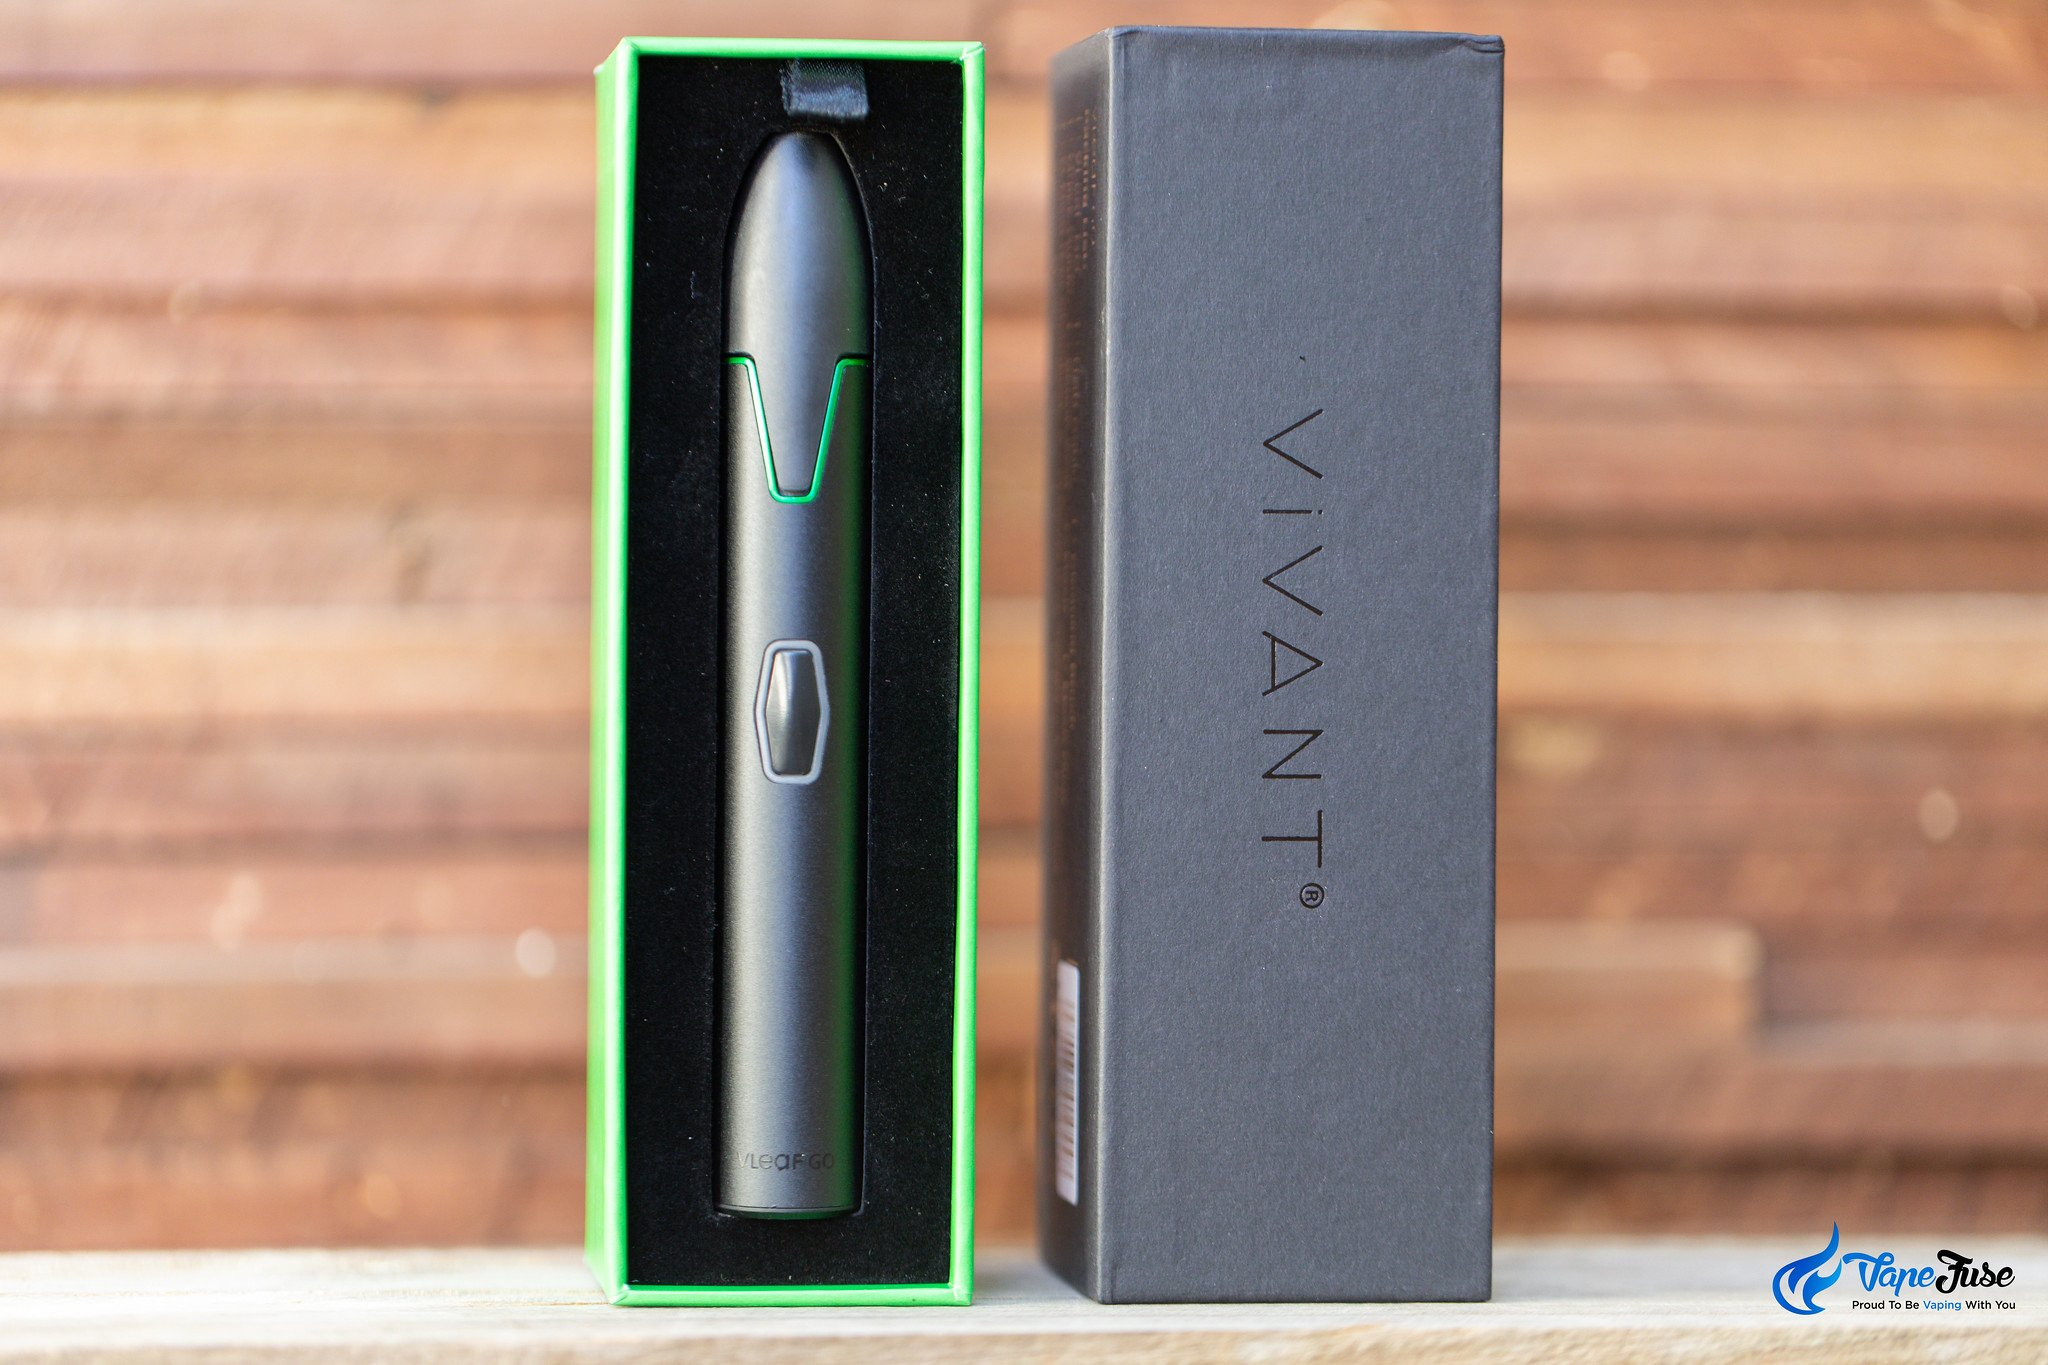 Vivant VLeaF Go Portable Vaporizer Review